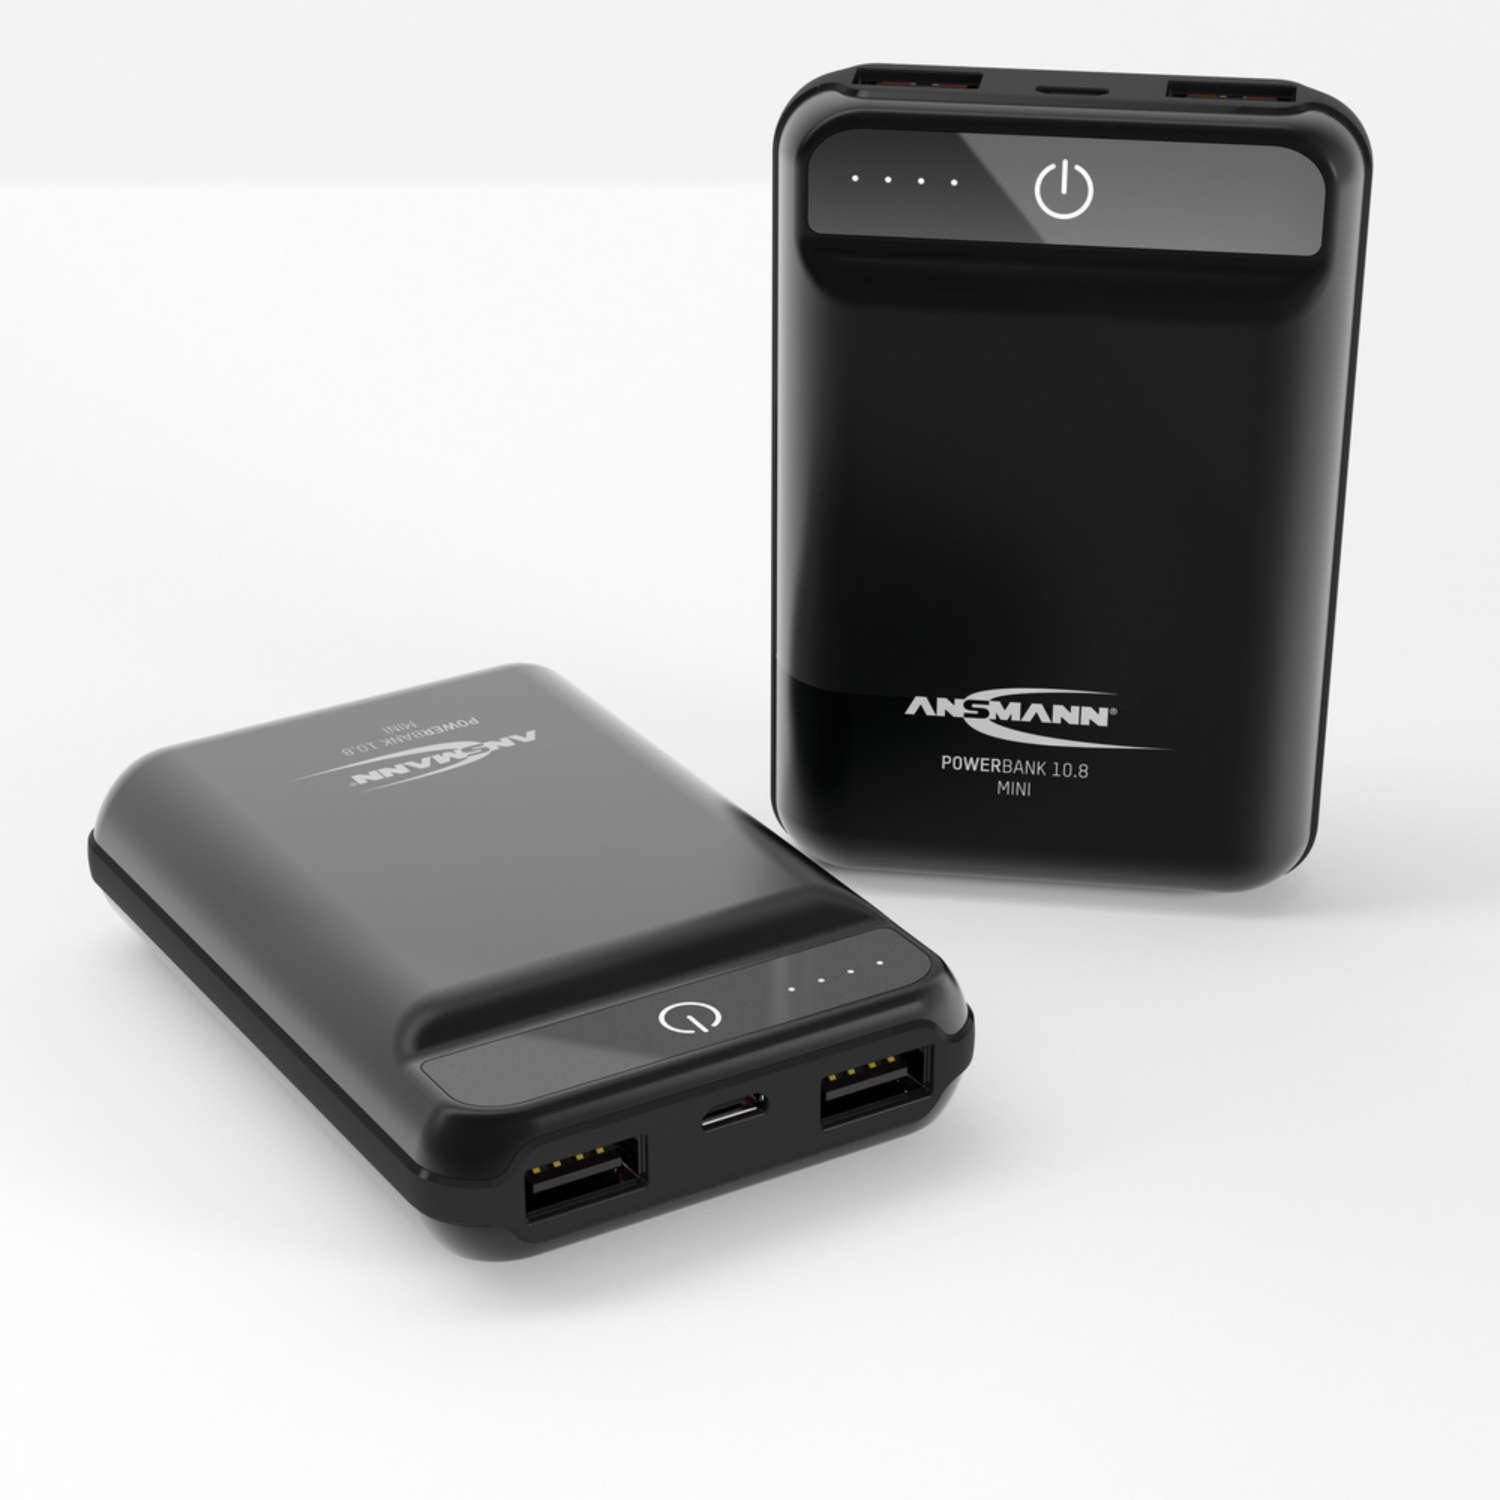 Powerbank 10.8 mini